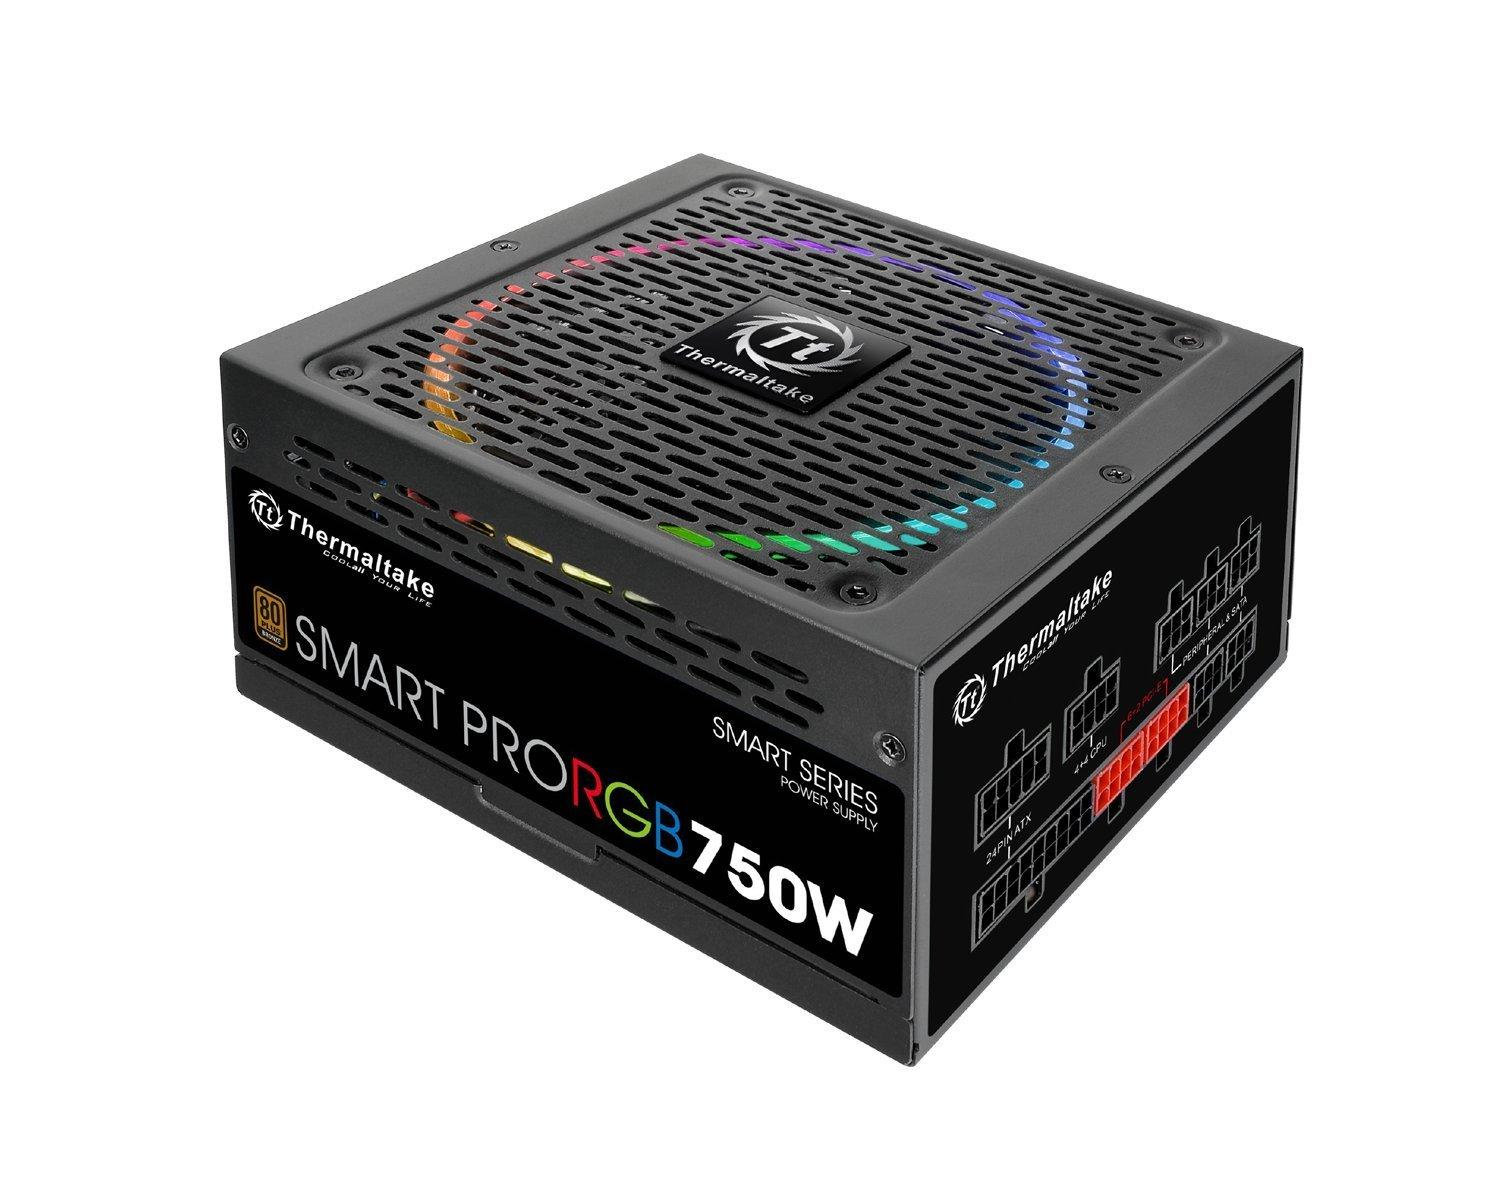 Where To Buy Thermaltake Smart Pro Rgb 750W Bronze Fully Modular